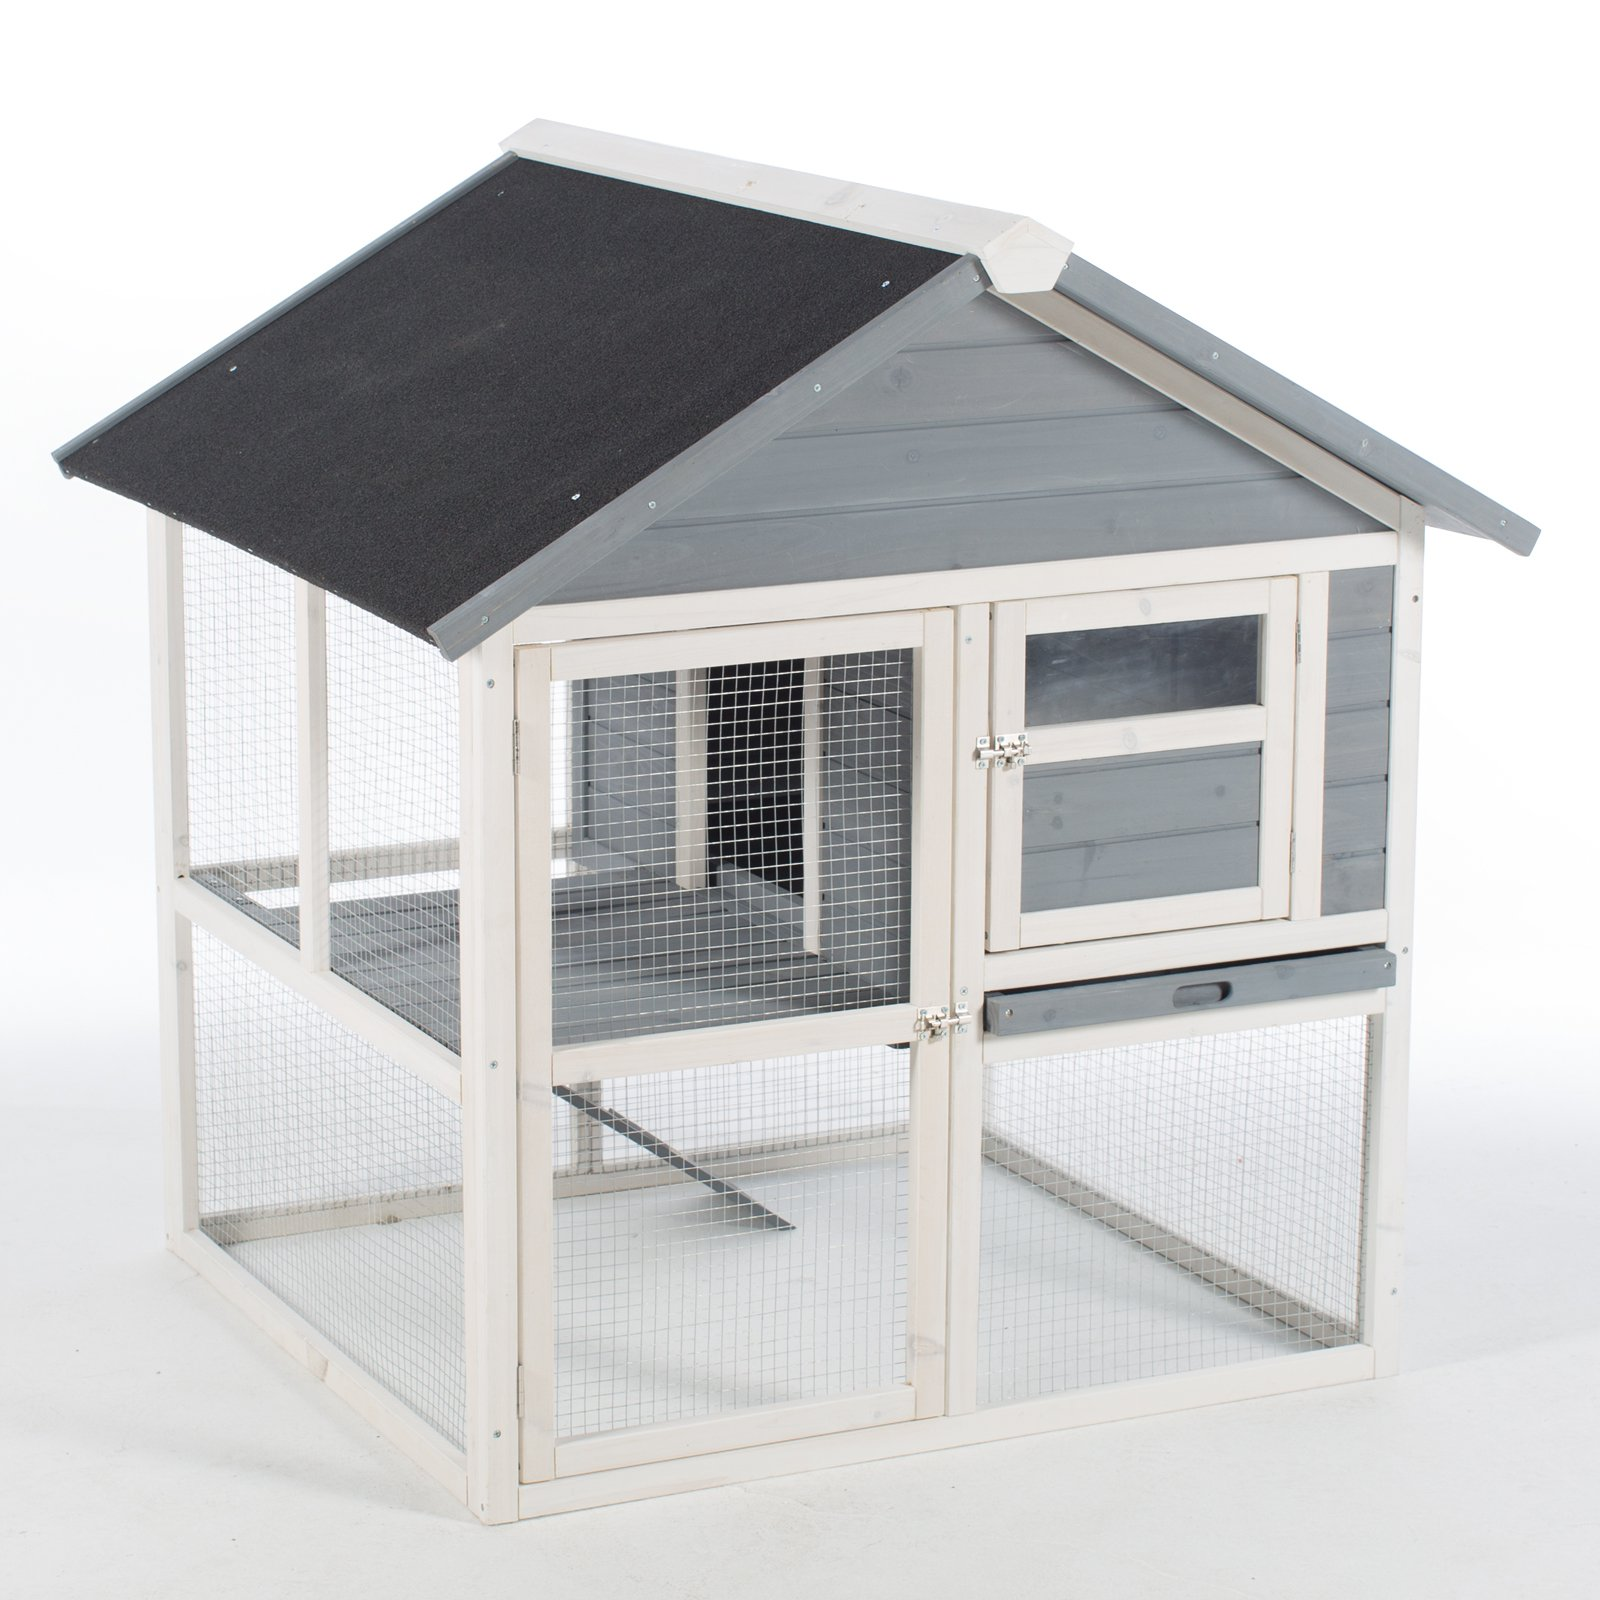 Boomer & George 2 Story Rabbit Hutch by